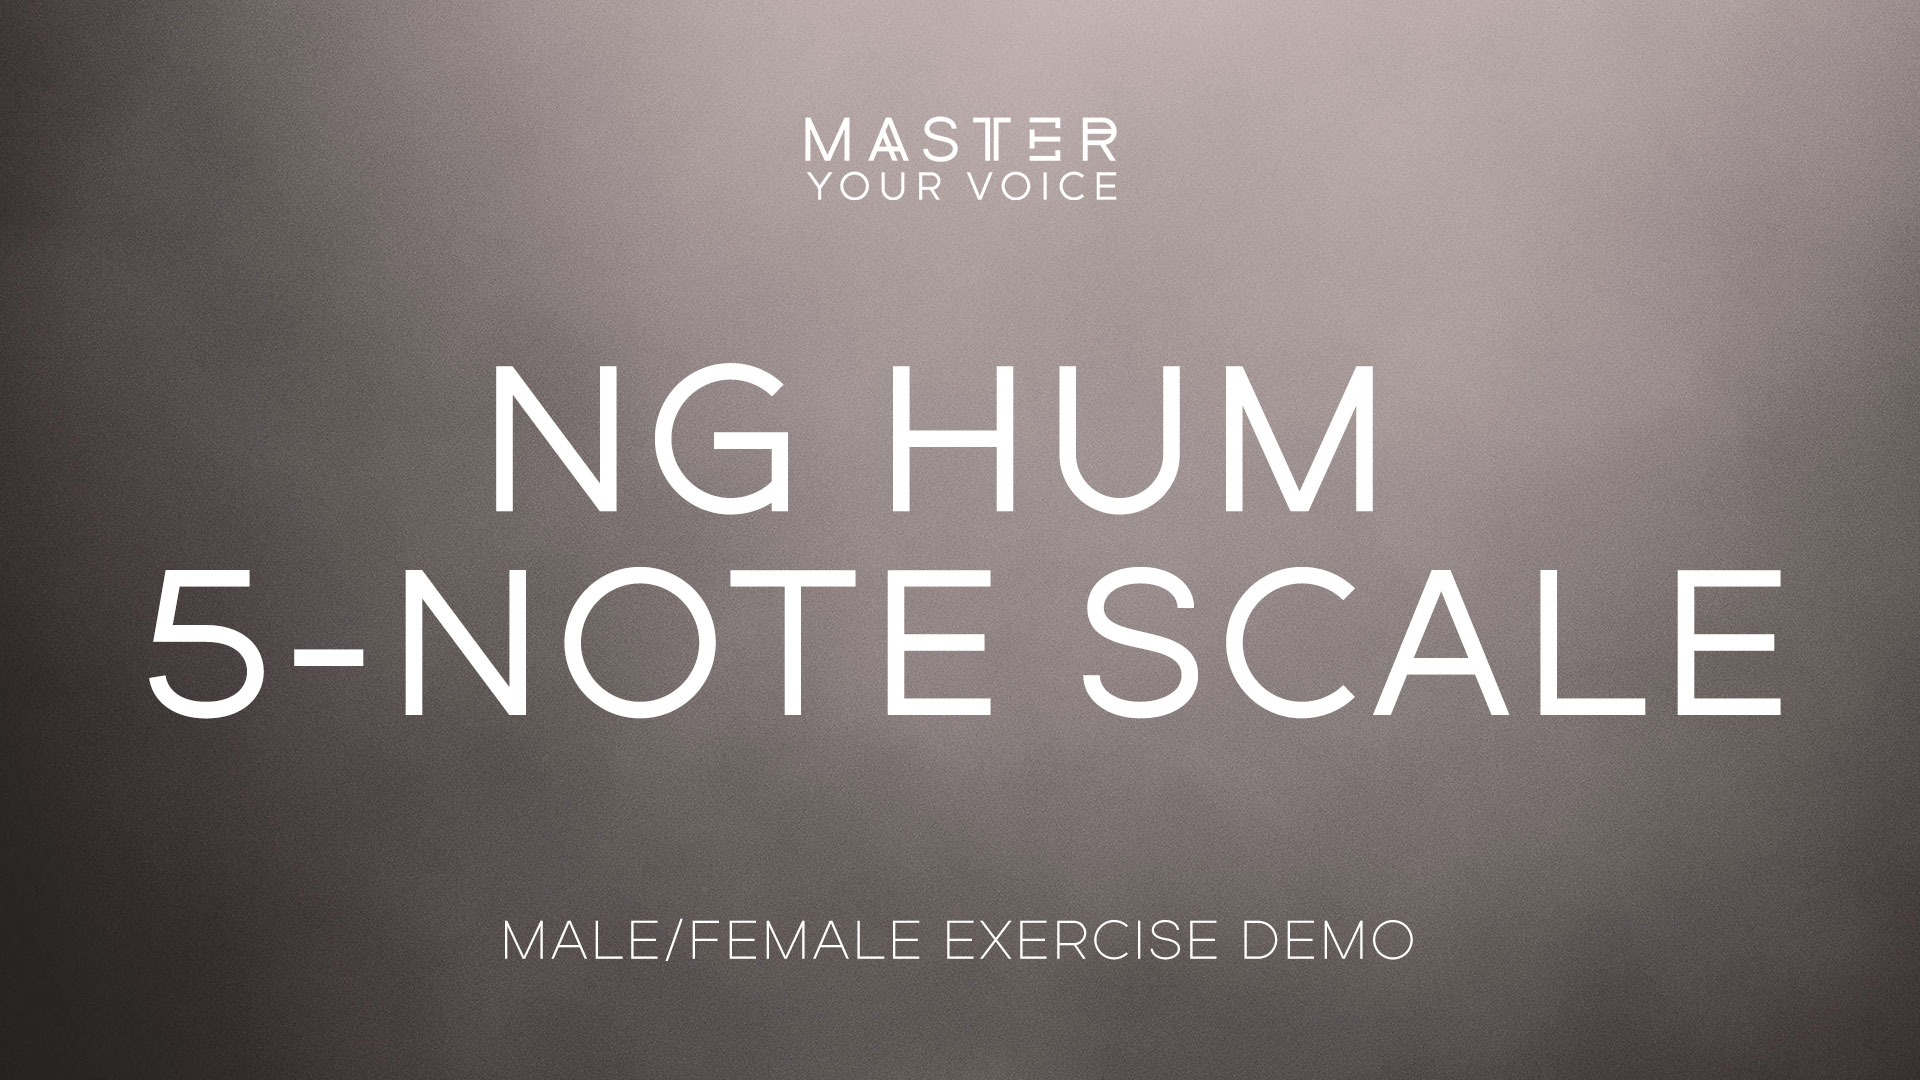 Ng Hum 5-Note Scale Exercise Demo